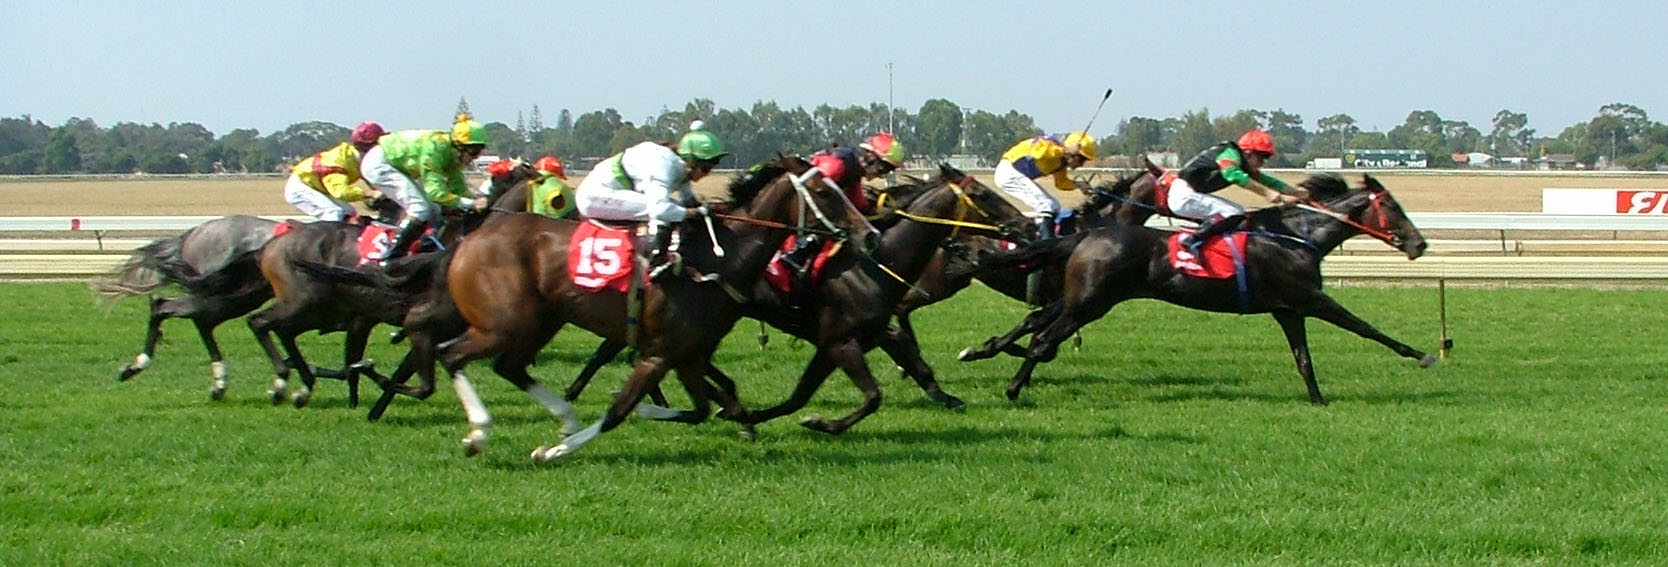 horse-sxchu-standard-restrictions.jpg (1668×567)